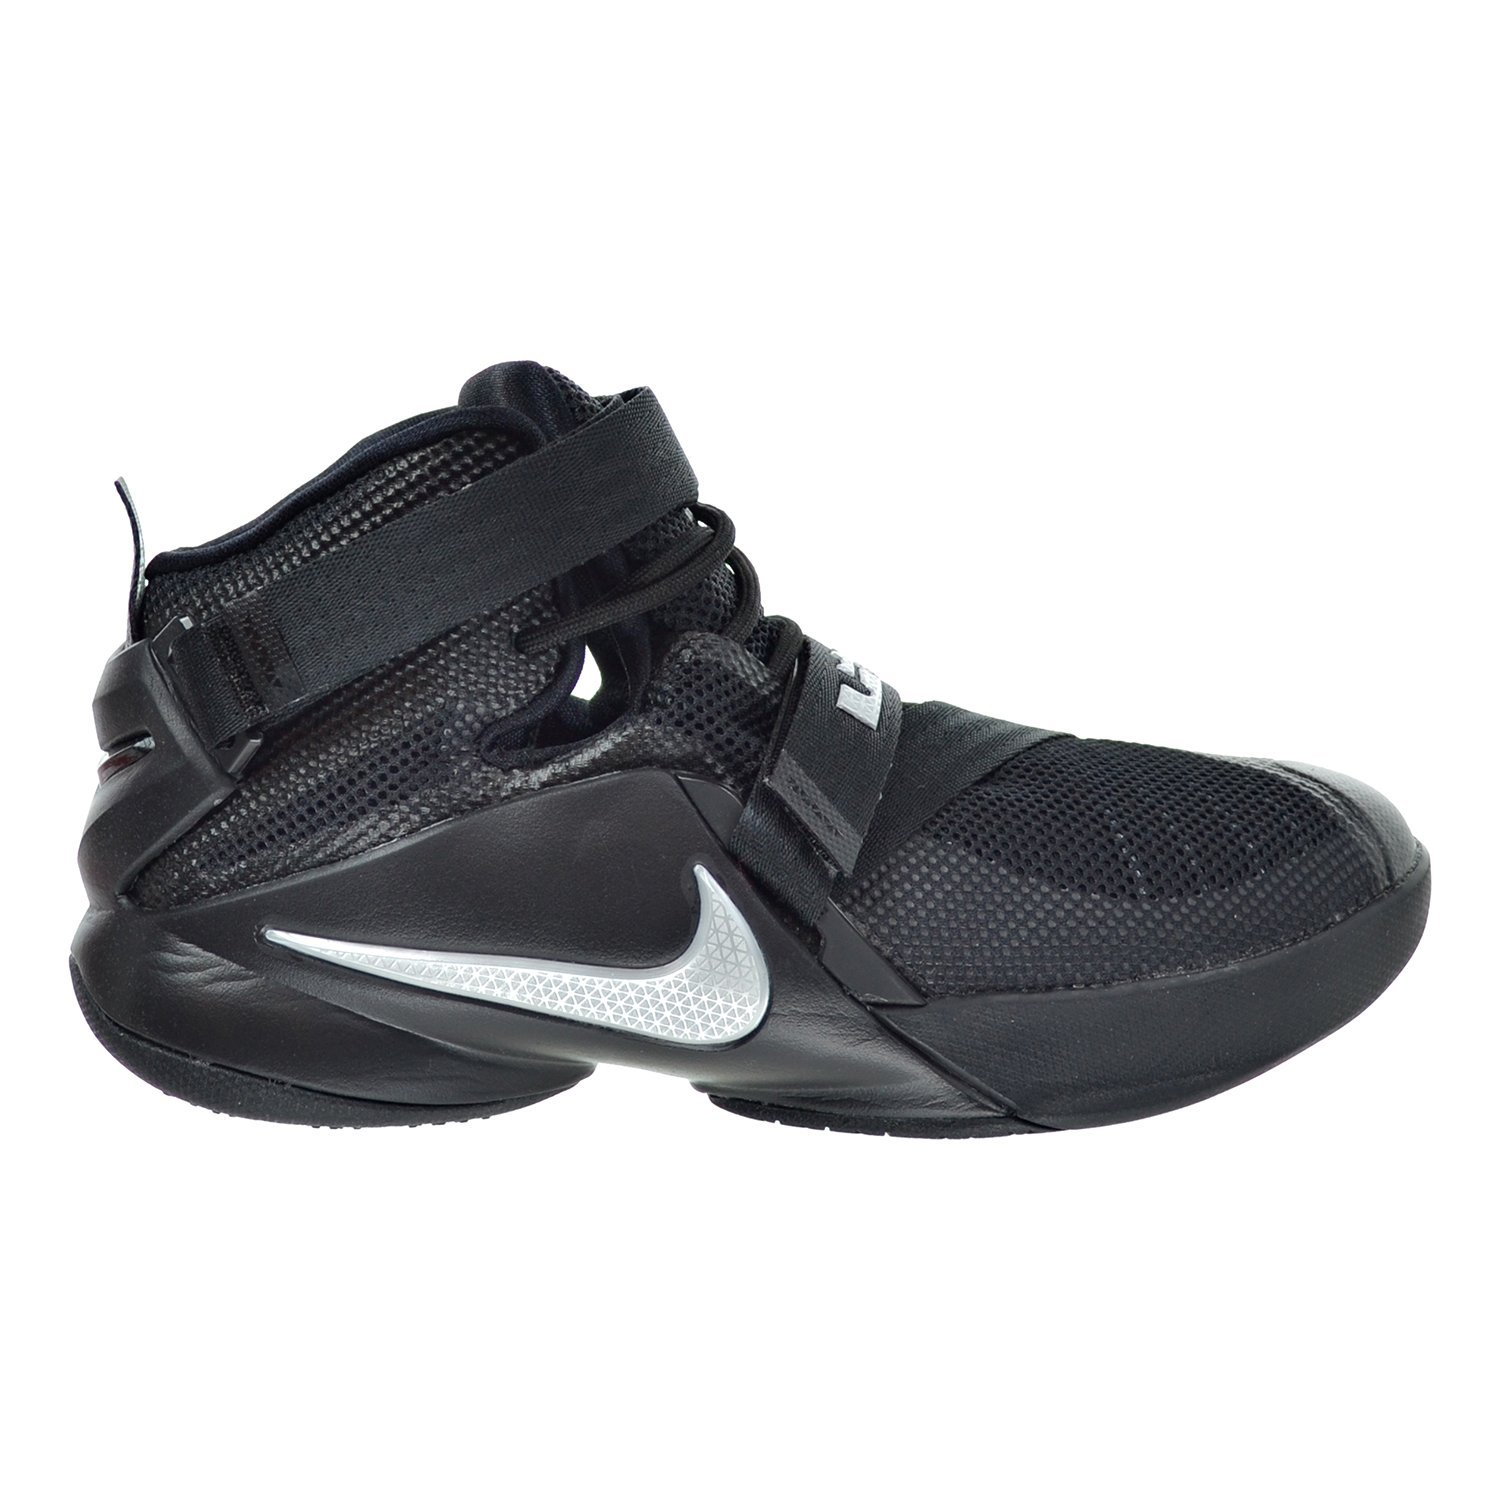 sale retailer 5aa2e 3f6a9 NIKE Kids' Grade School Zoom Lebron Soldier IX Basketball Shoes